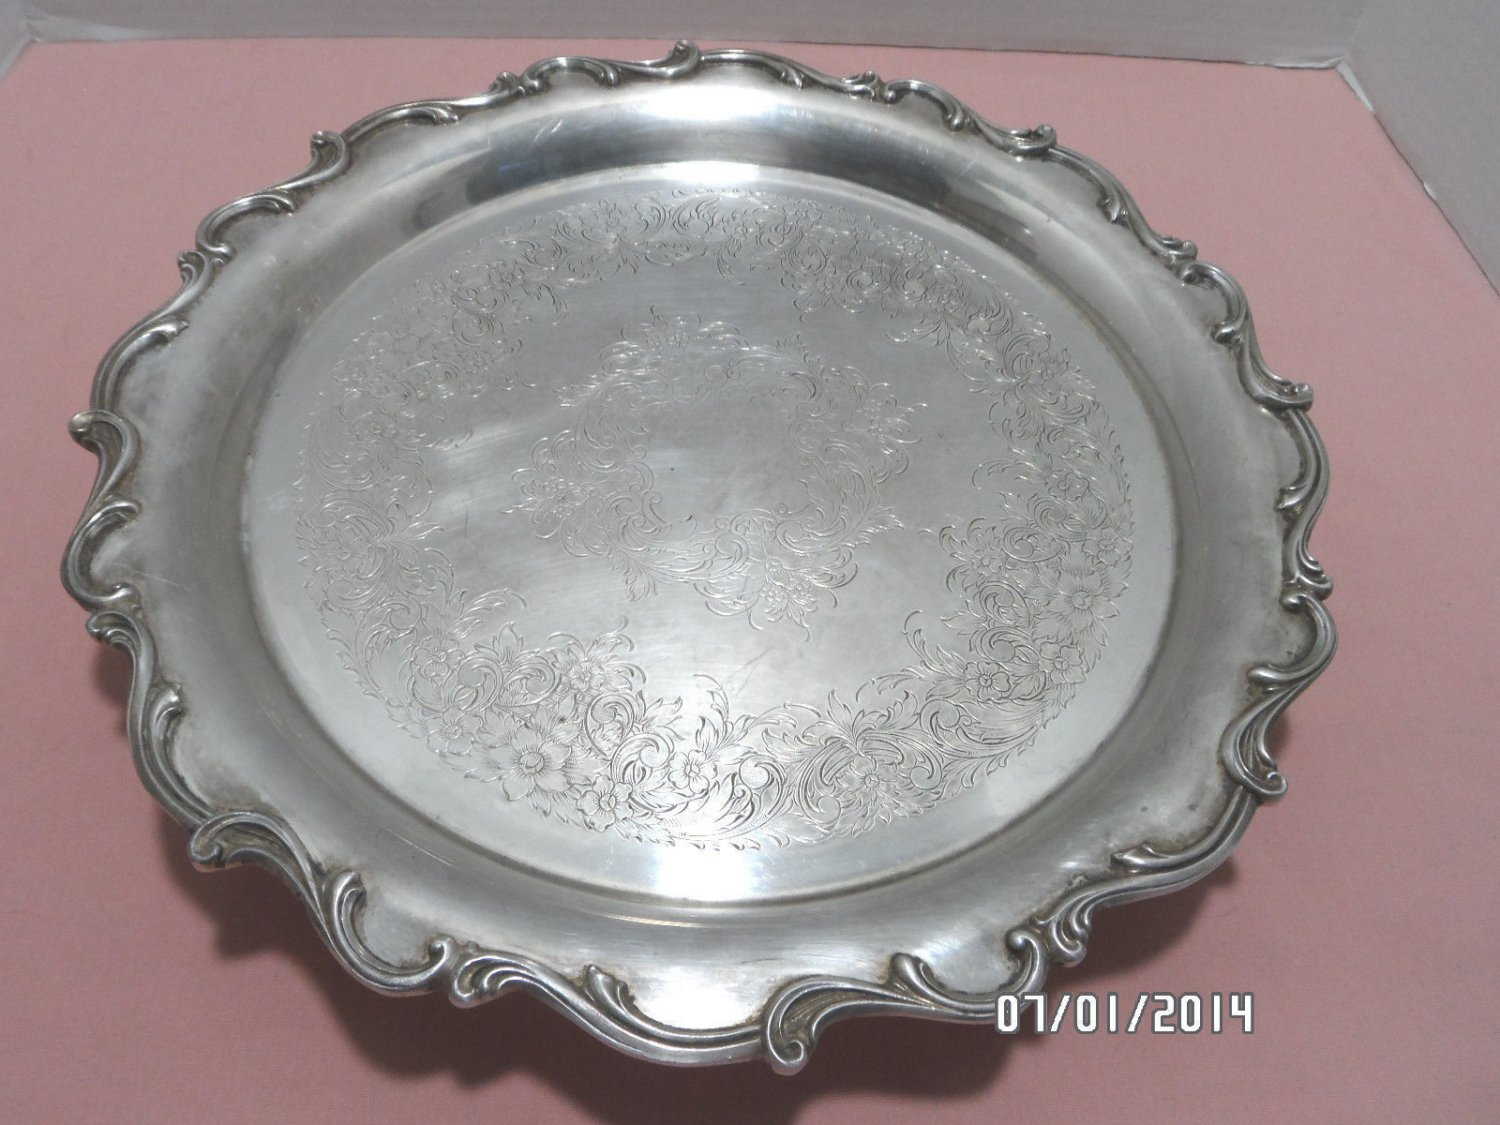 Serving Tray Silver Plated Footed Floral Design Ornate Edges Vintage